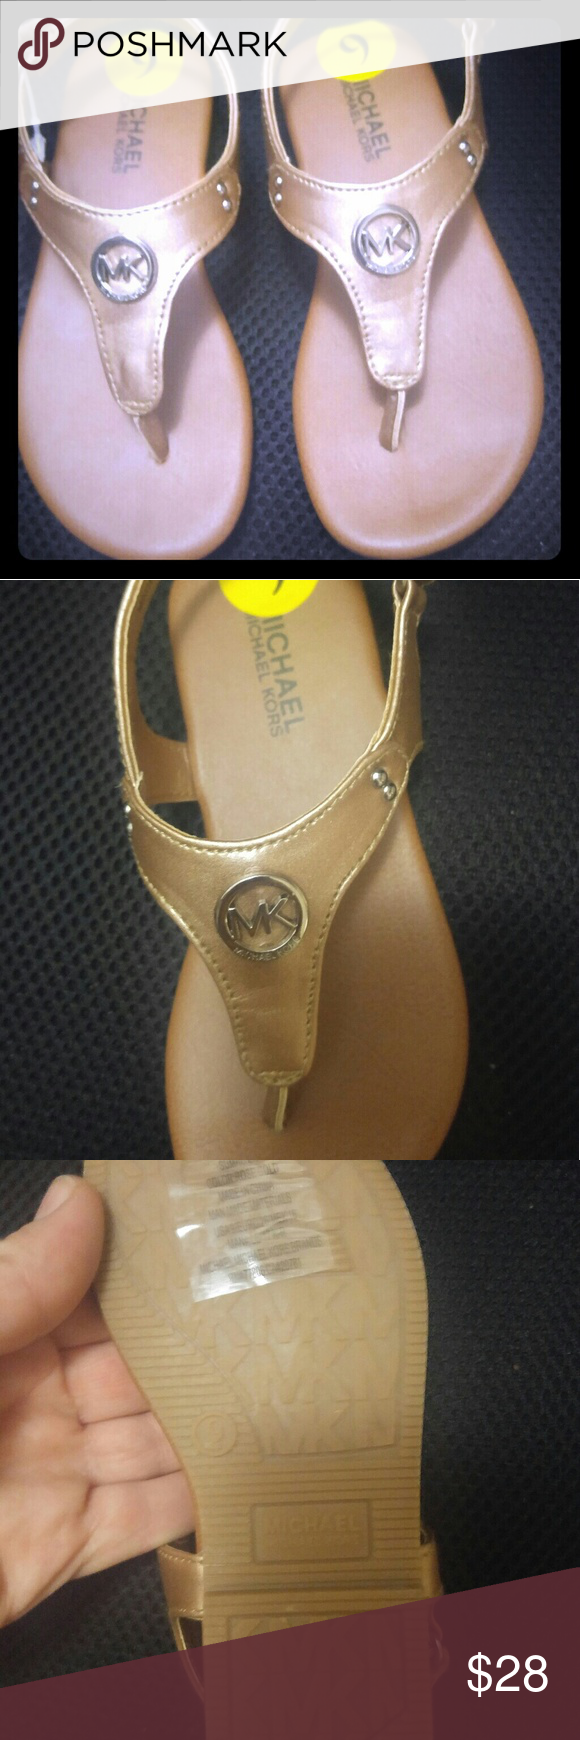 9 Gold Kors Baby's Thong Size Michael Sandals Rose W9bE2eDHIY